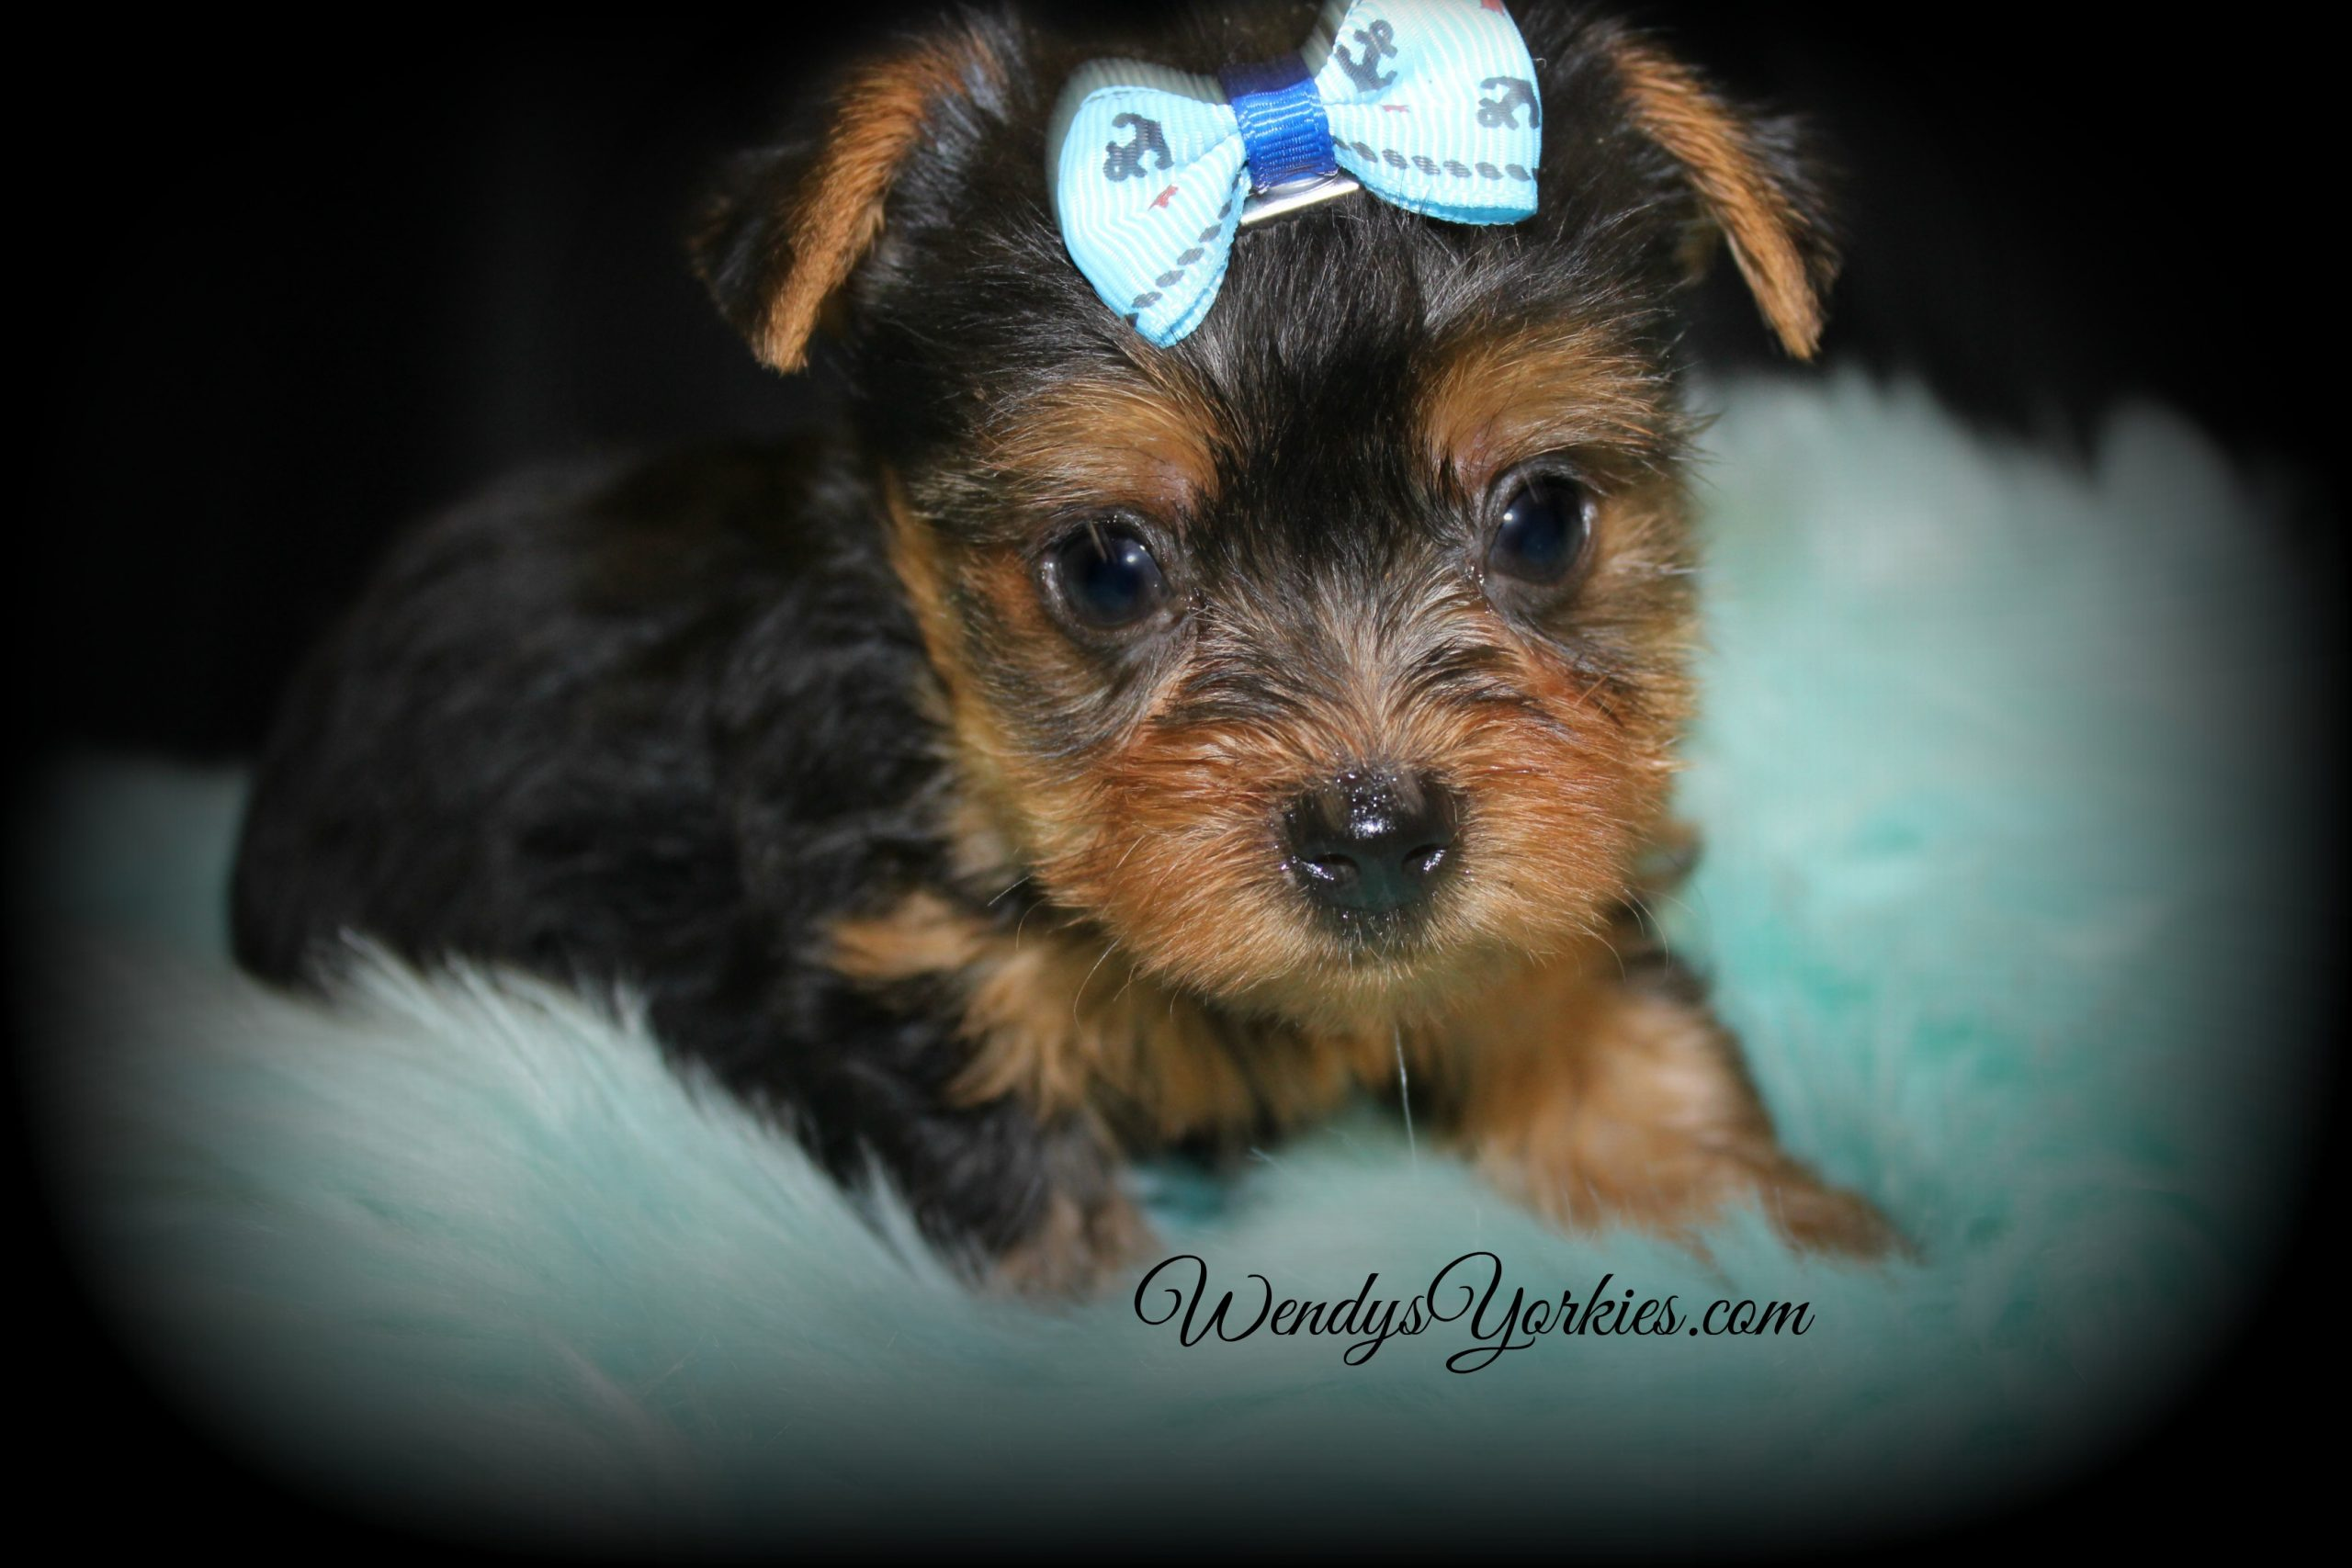 Teacup Male YOrkie puppy for sale, Grace m1, WendysYorkies.com